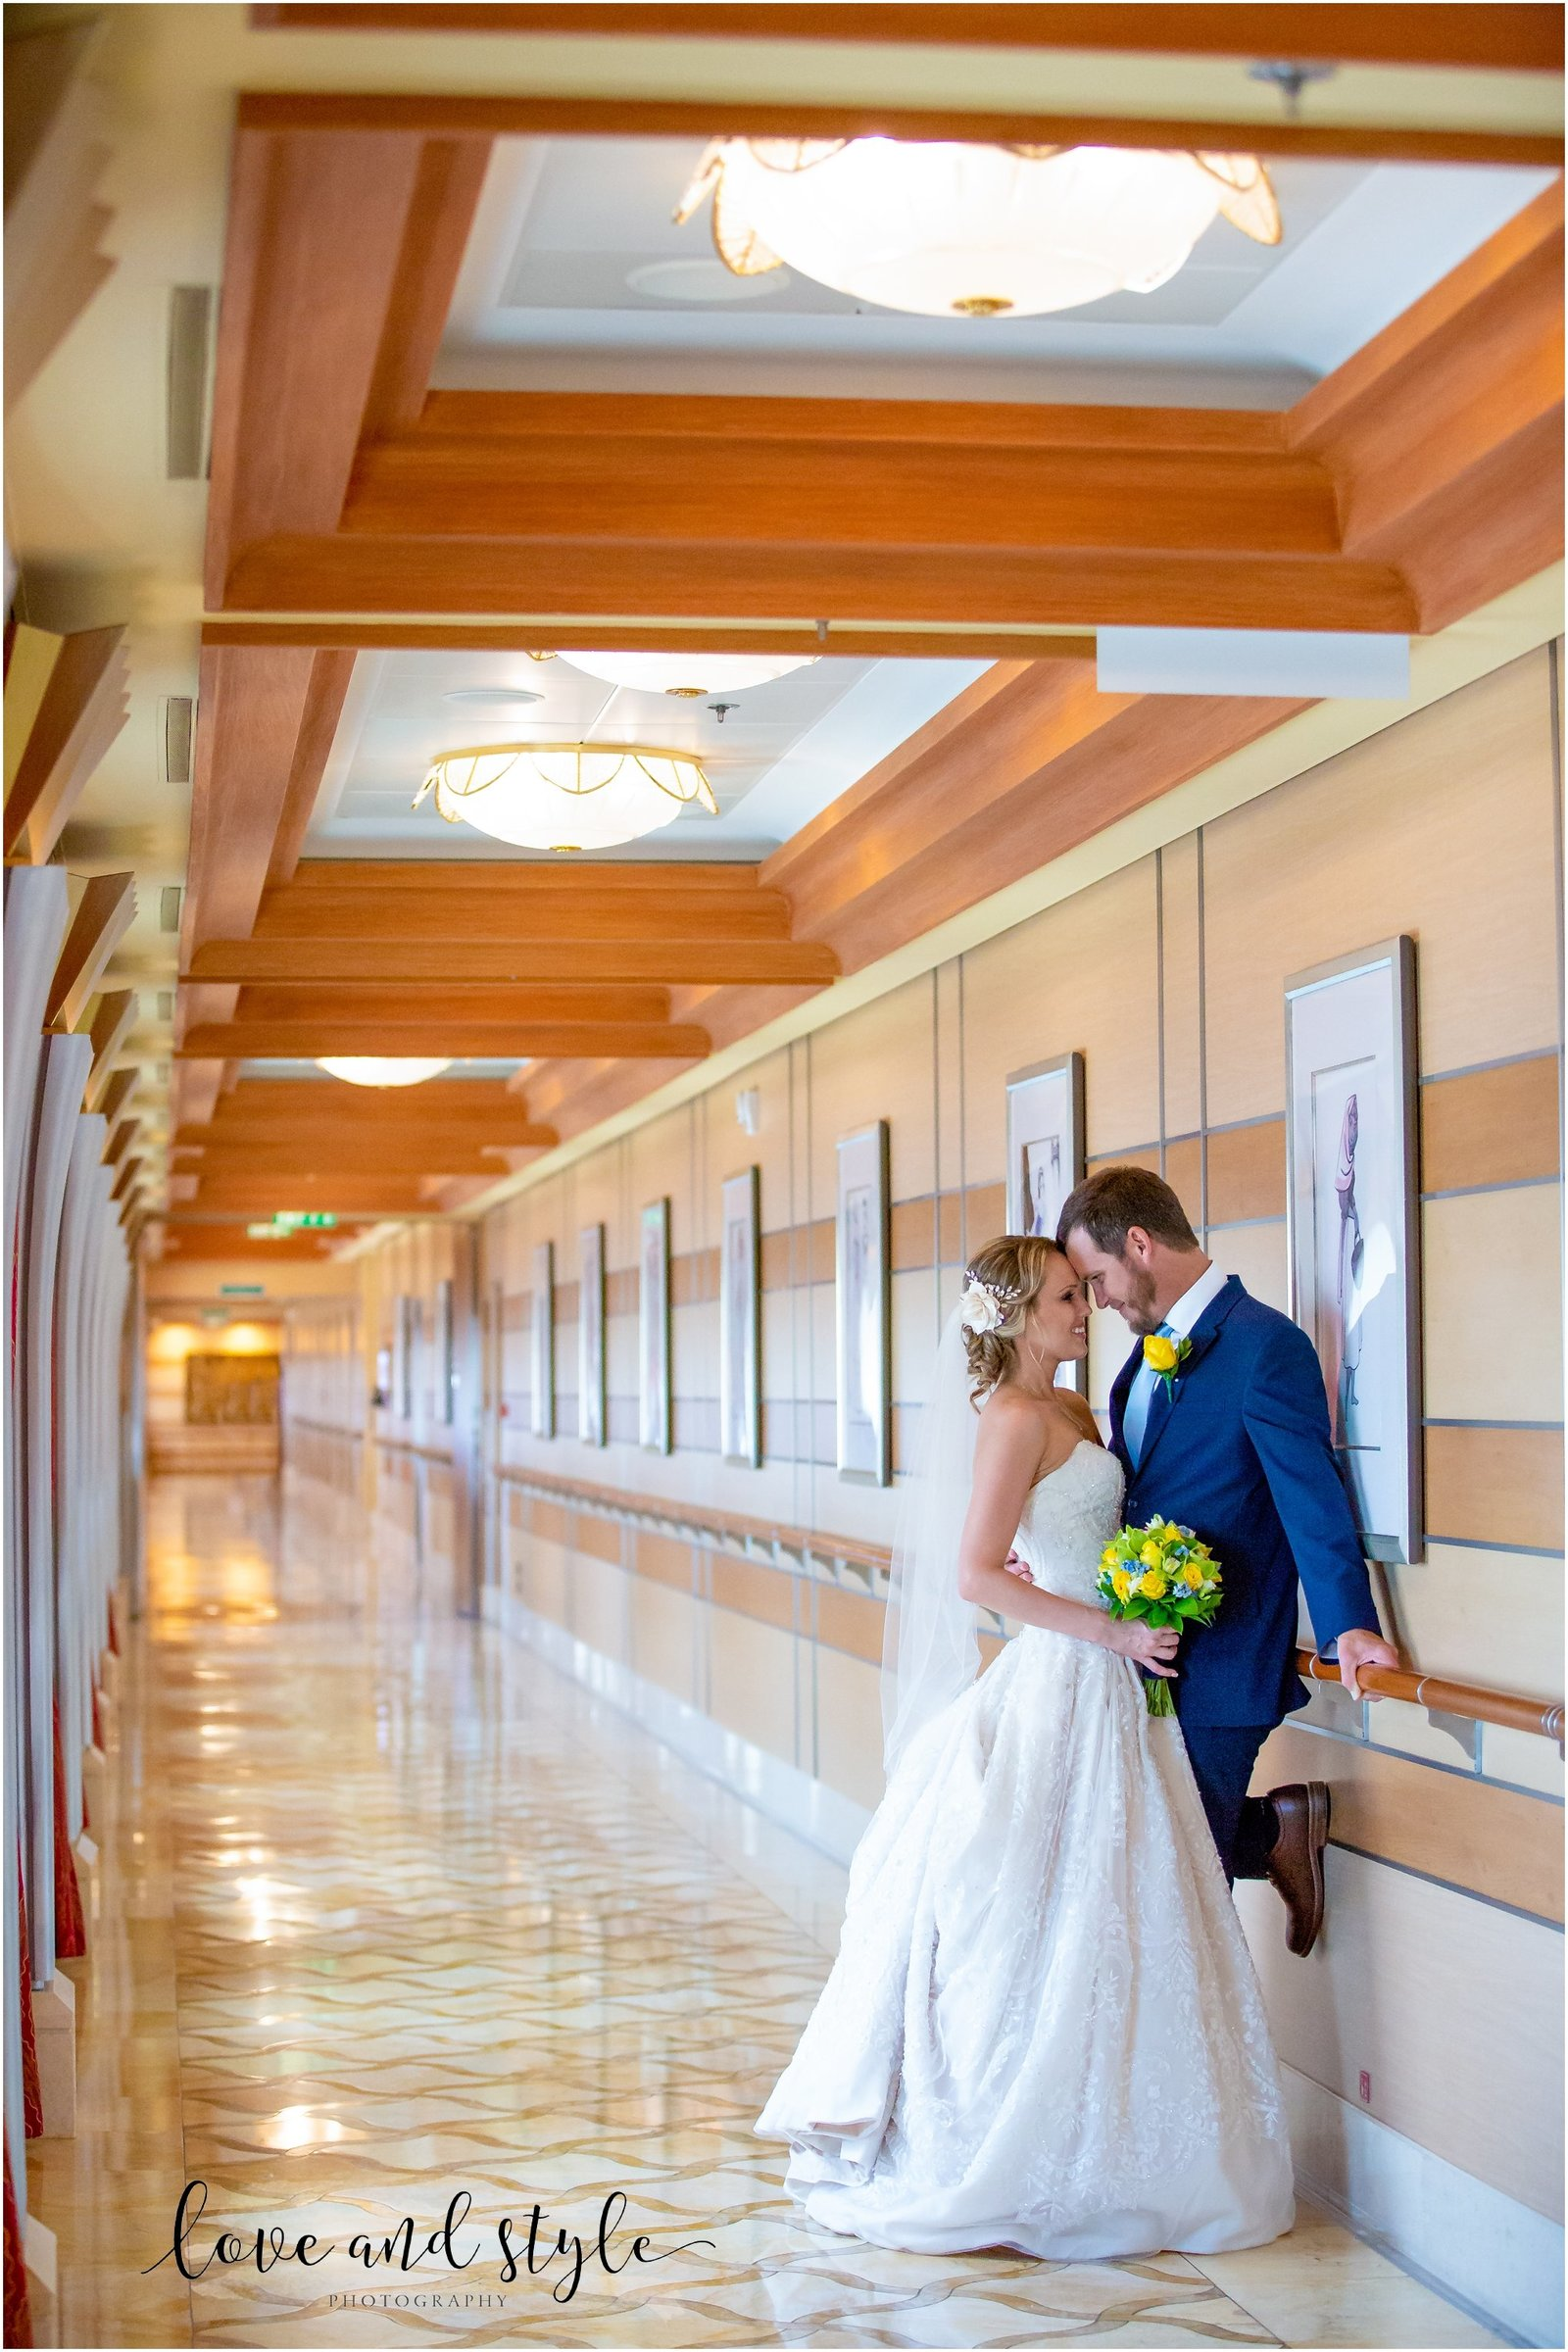 Disney Dream Cruise Wedding Photography bride and groom portrait in the hallway kissing